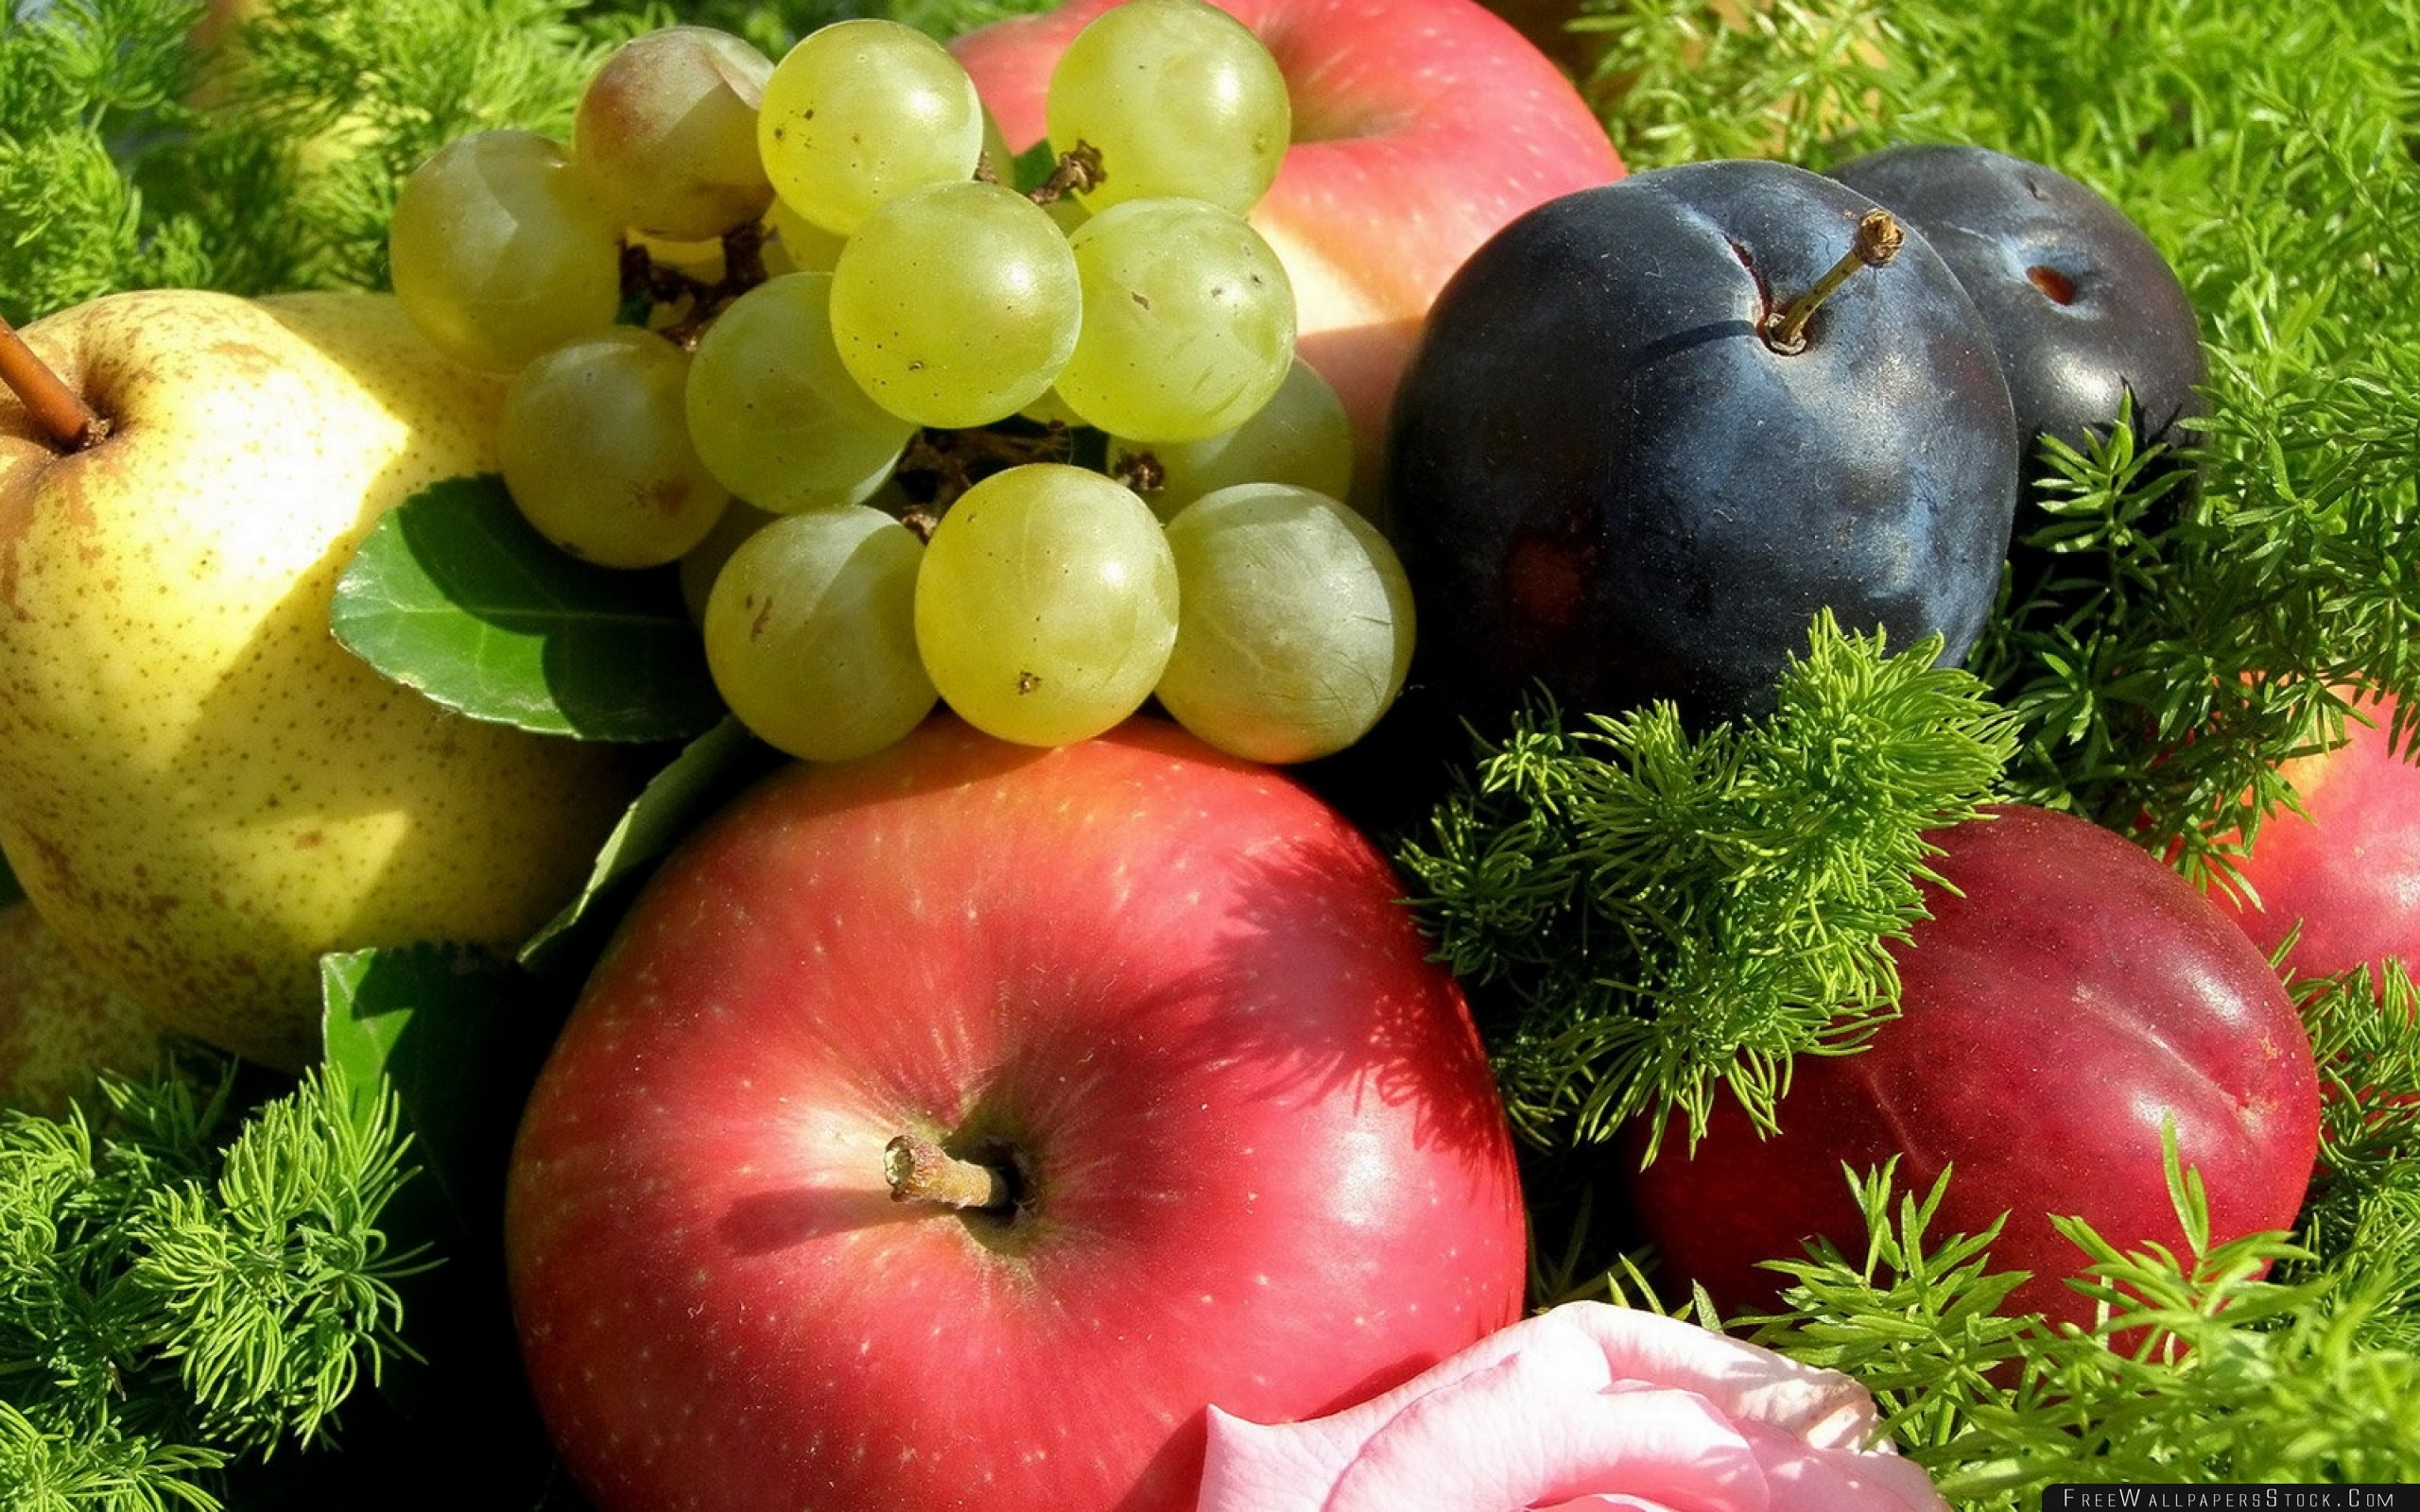 Download Free Wallpaper Apples Grapes Plums Fruit Grass